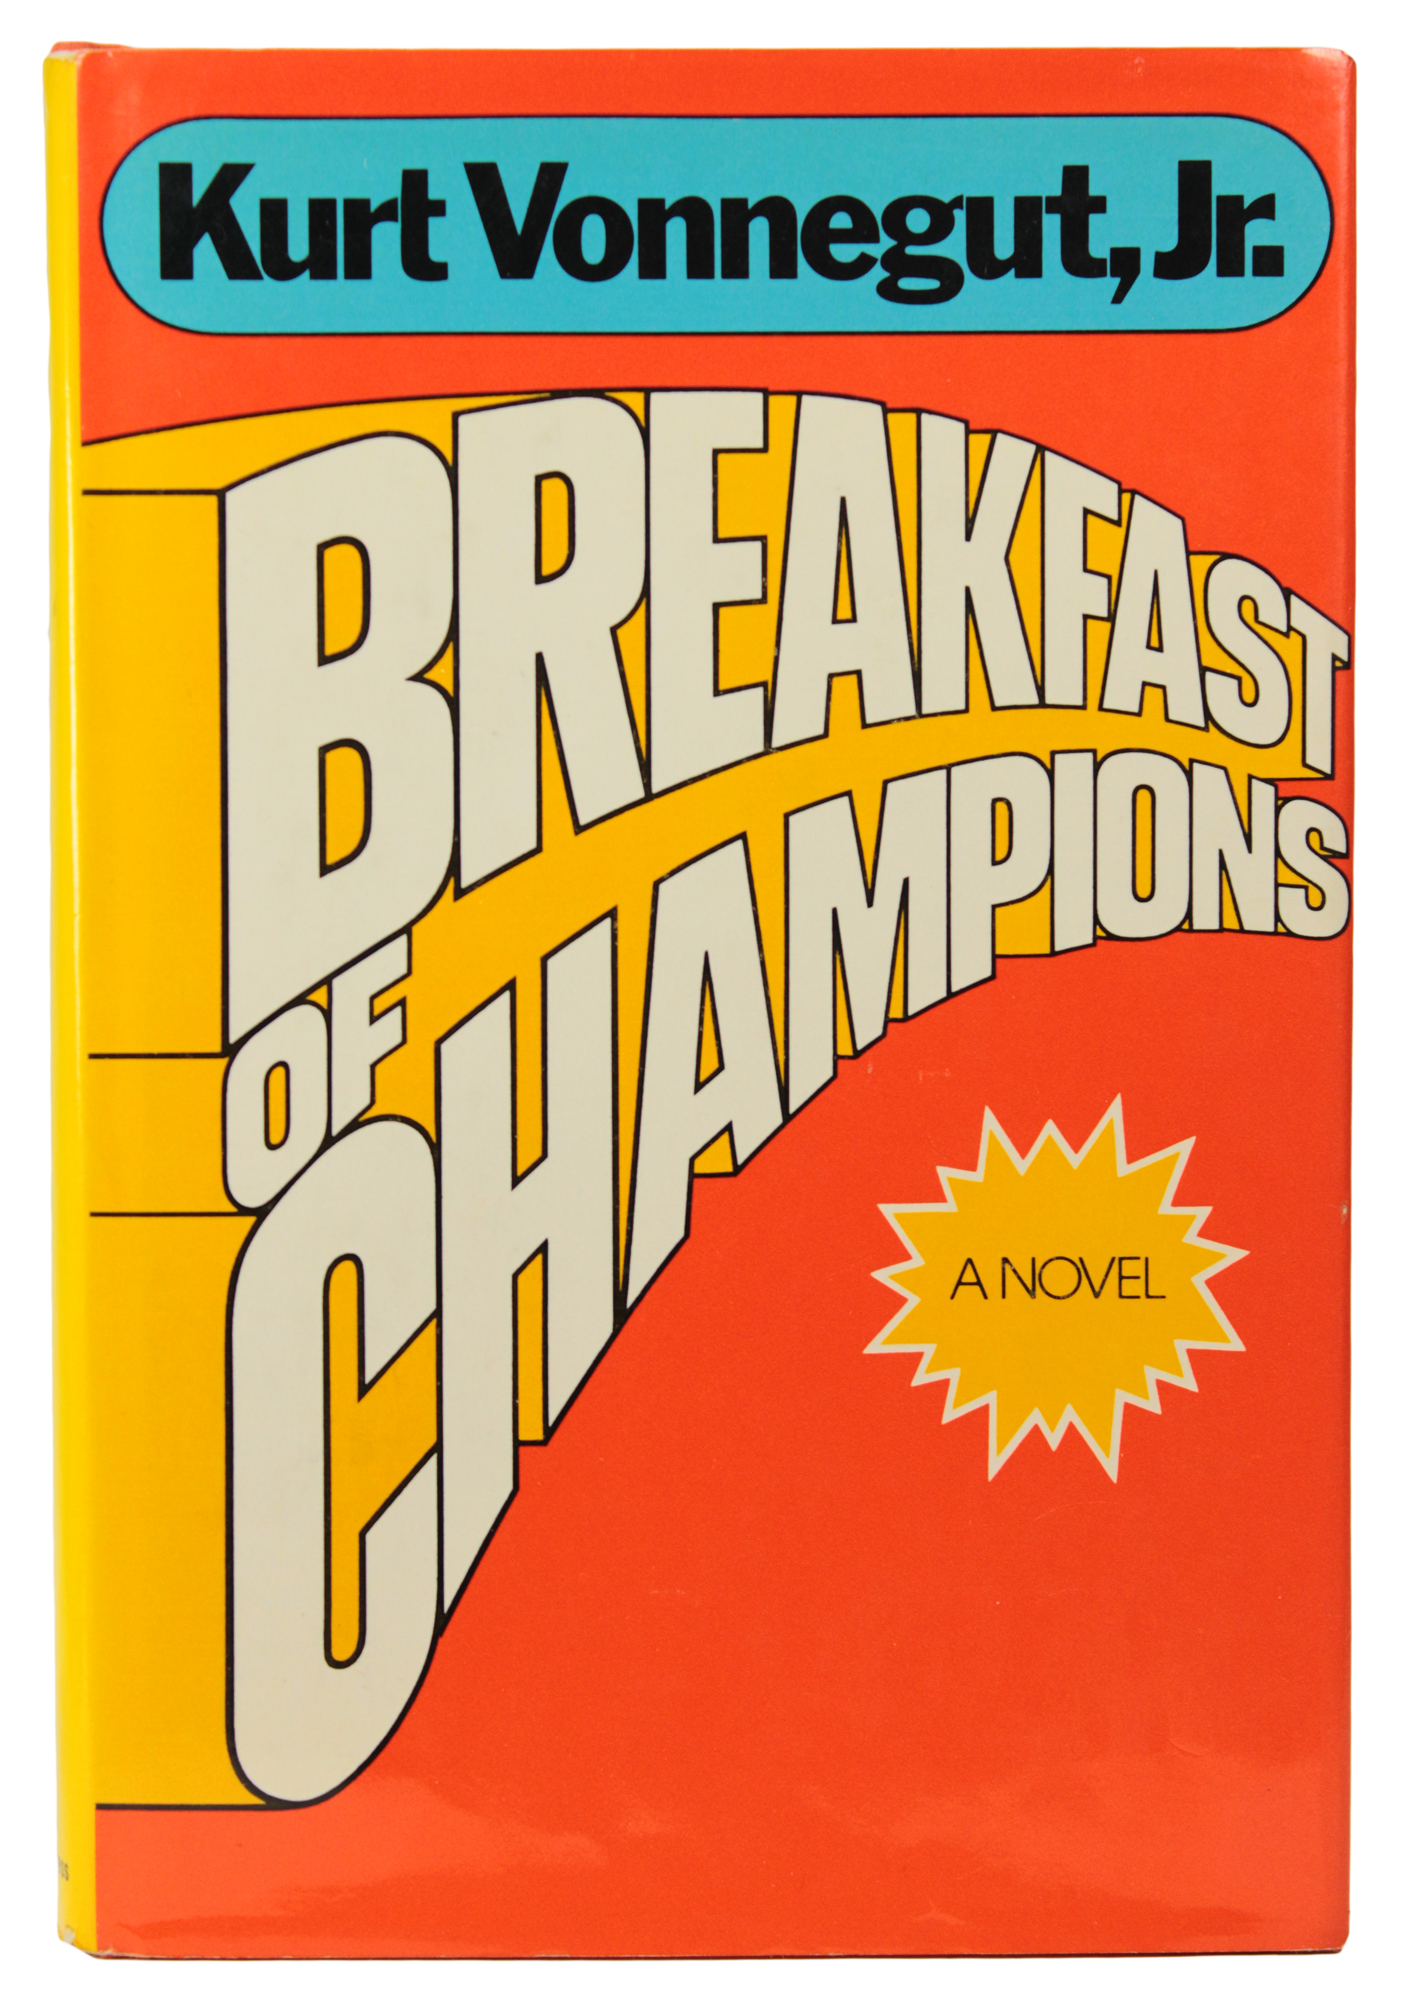 a report on breakfast of champions by kurt vonnegut Kurt vonnegut: breakfast of champions kurt vonnegut's breakfast of champions is a bleakly comic postmodern reflection on literature and language vonnegut deliberately pays little attention to the plot, which involves science fiction writer kilgore trout (a vonnegut avatar who.